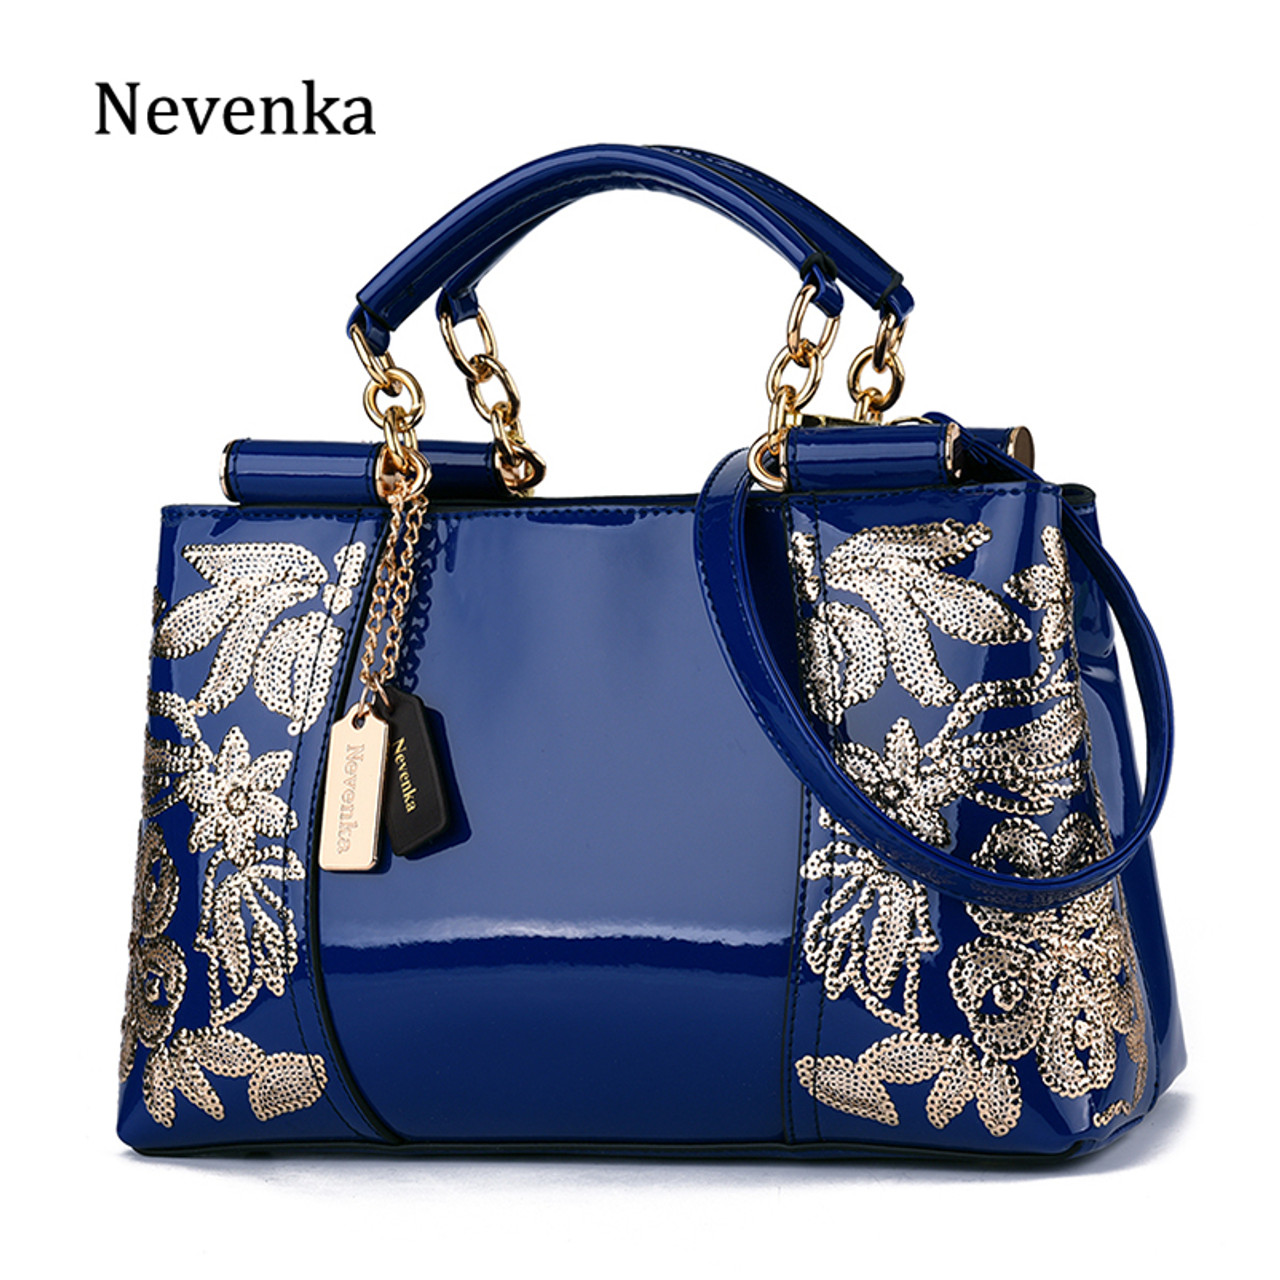 Nevenka Luxury Evening Bags Women Leather Handbag Embroidery Shoulder Bags  Female Purses and Handbags with Sequins Totes 2018 - OnshopDeals.Com 1c9afe8456831